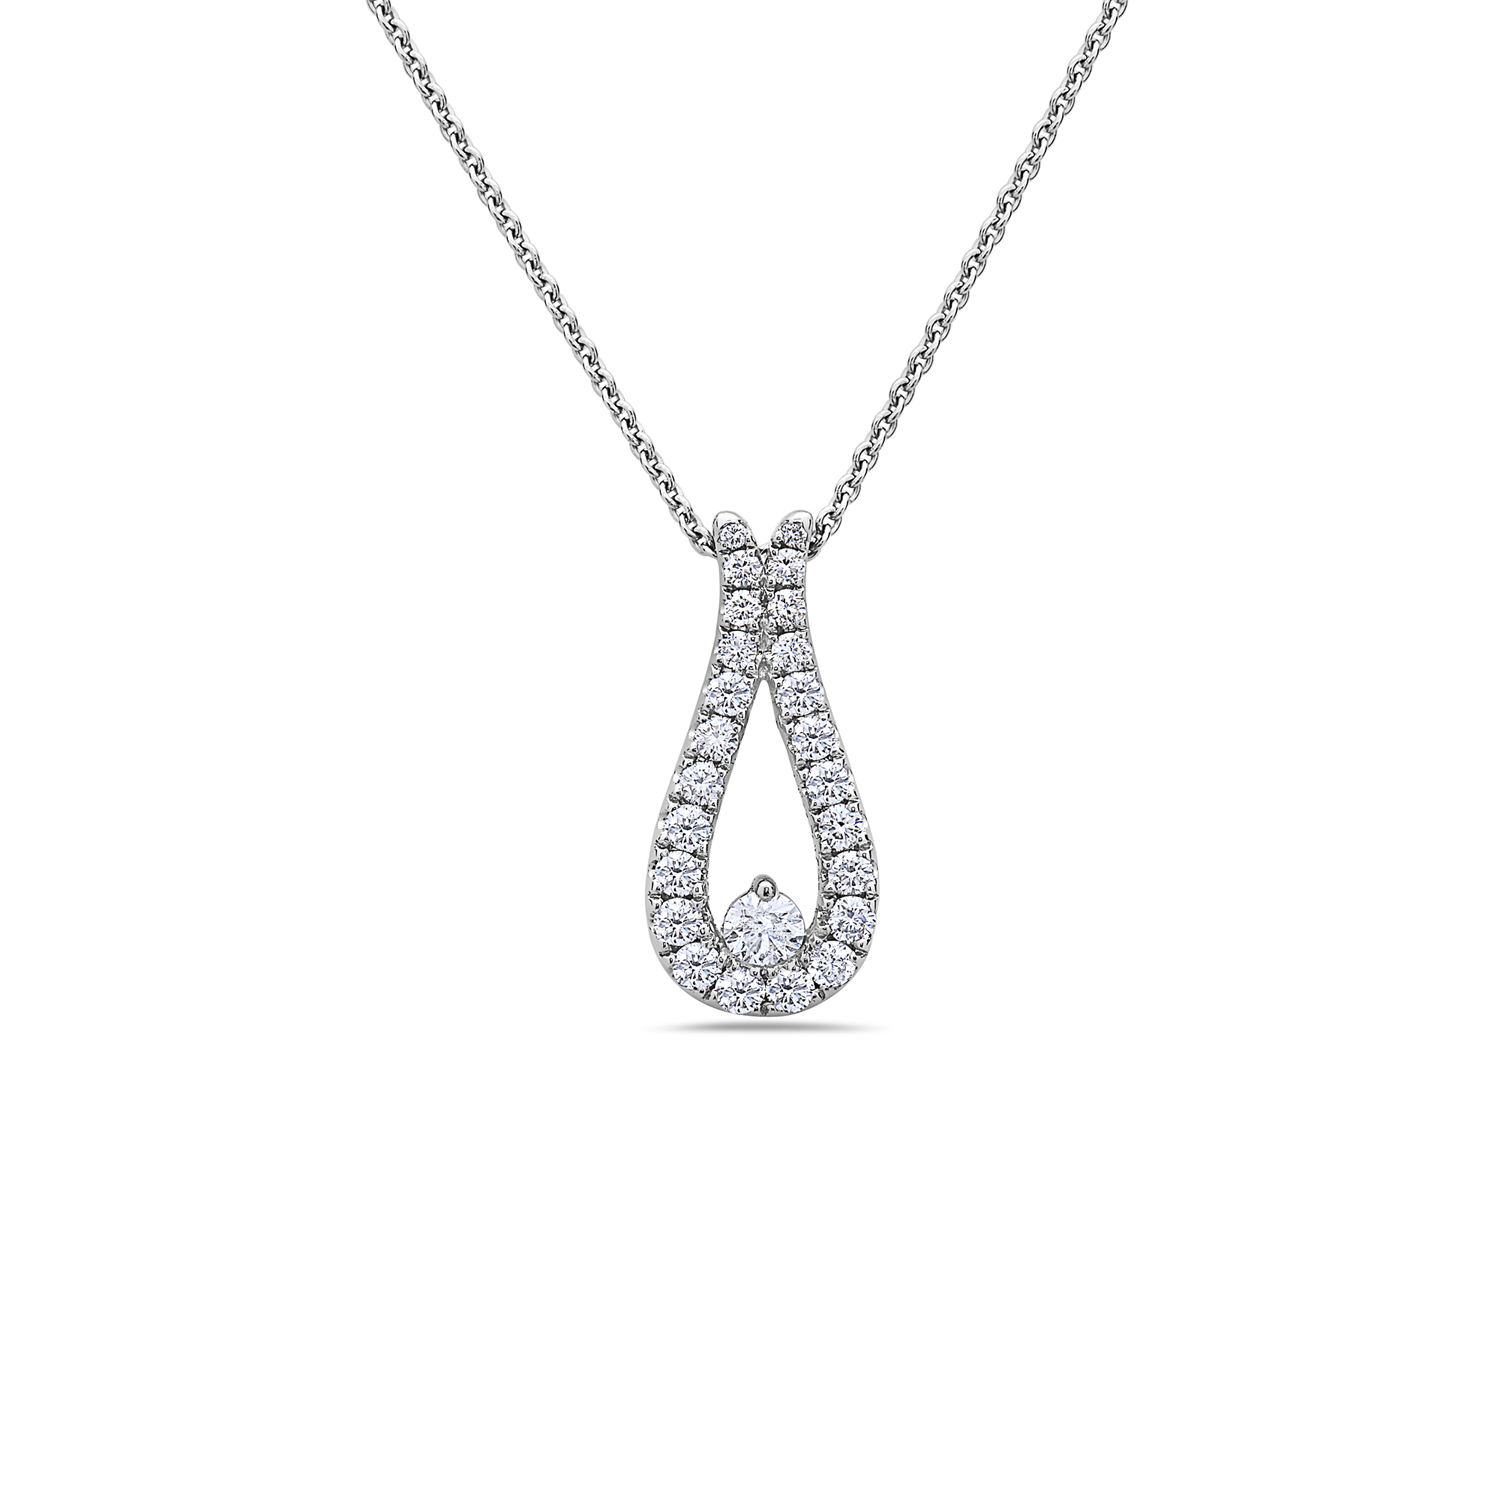 Charles Krypell 18 Karat White Gold Diamond Teardrop Pendant